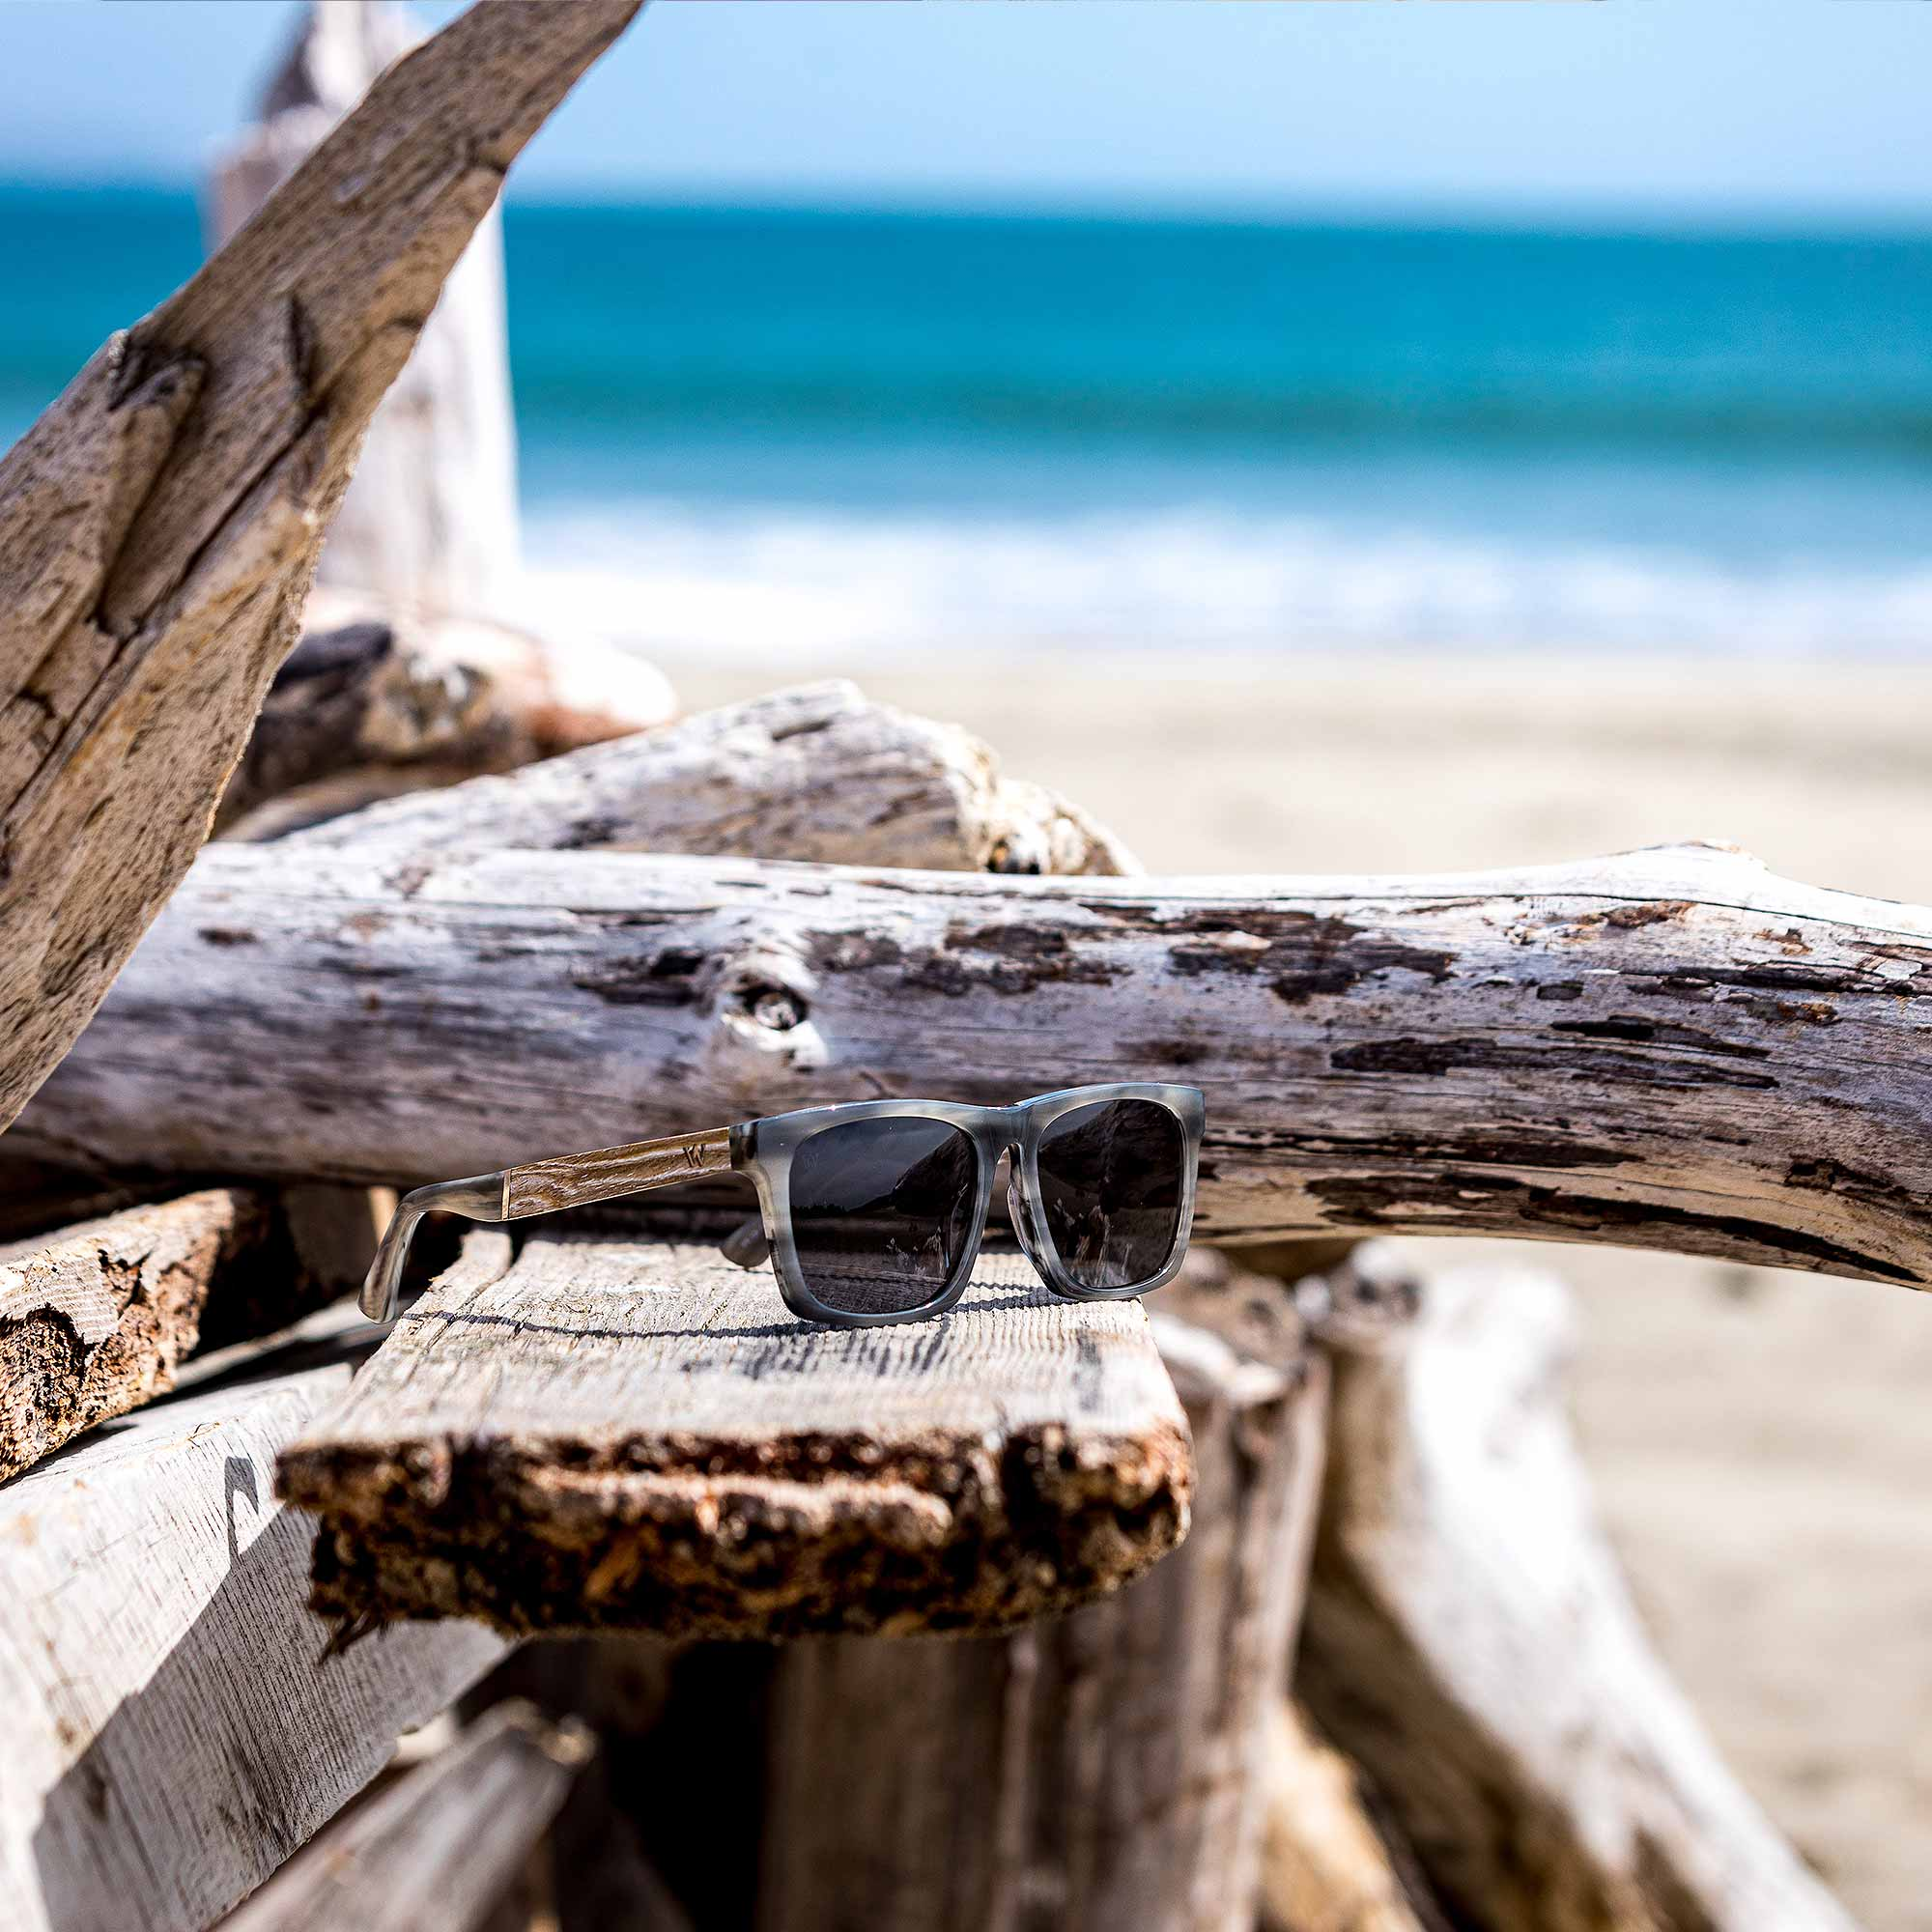 Ocean Water Product Photo with Sunglasses by Results Imagery